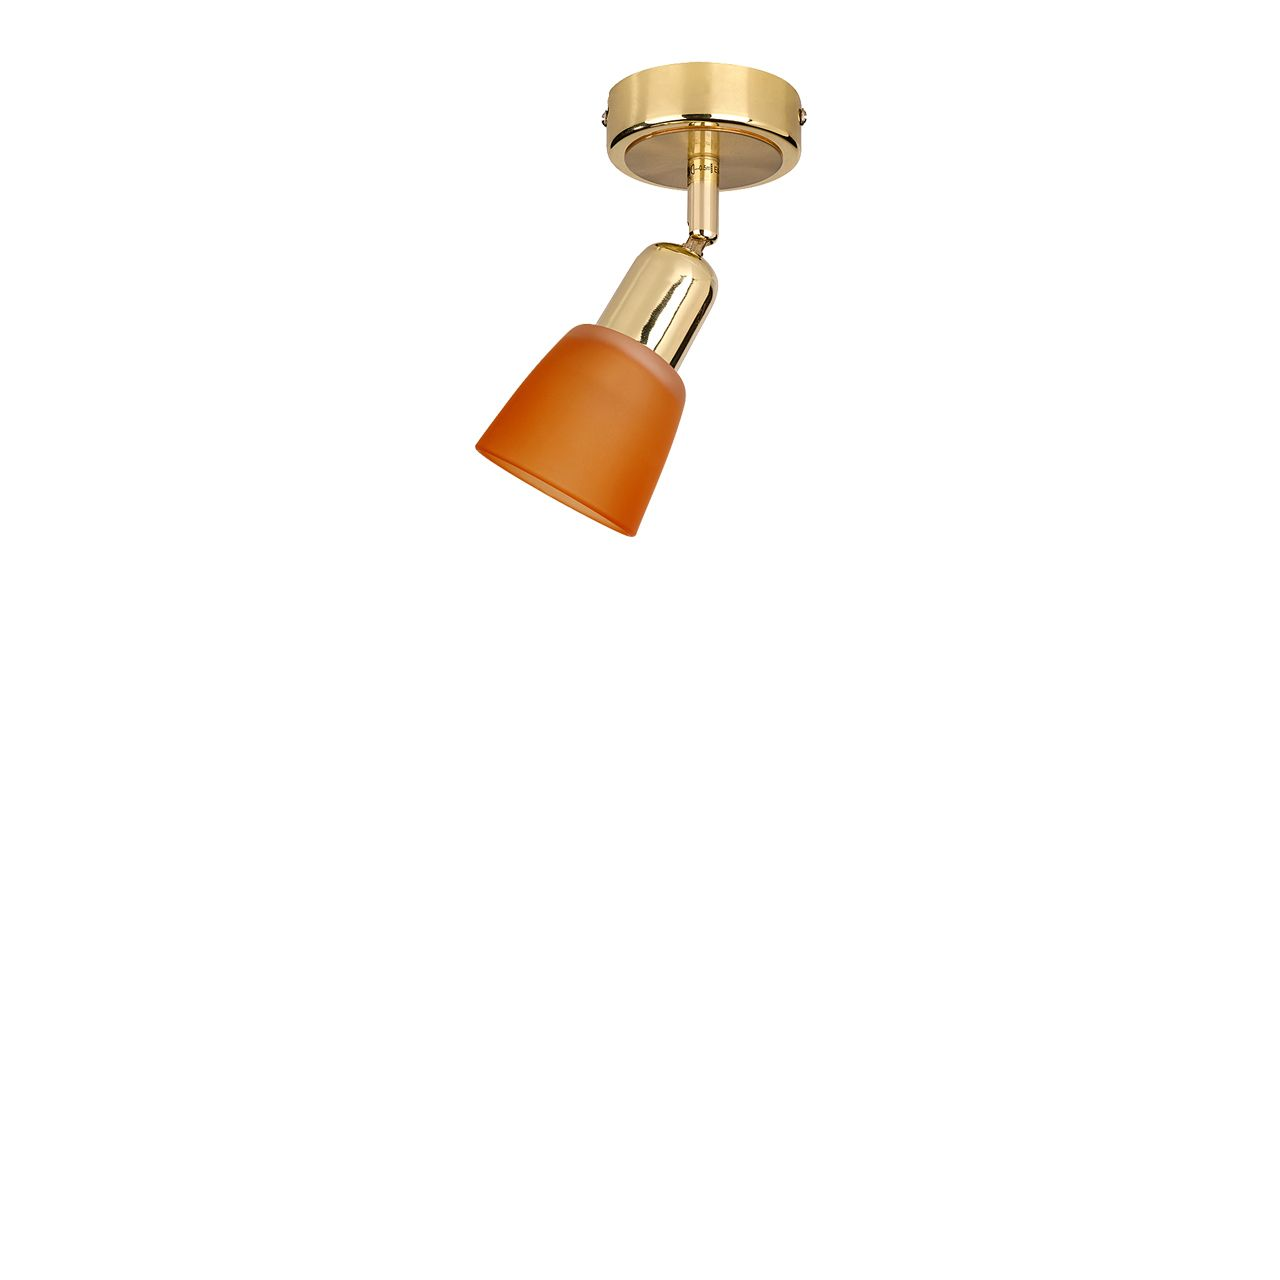 Светильник спот Luce Solara 5046 5046/1PA Gold/orange pyrex 813b000 5046